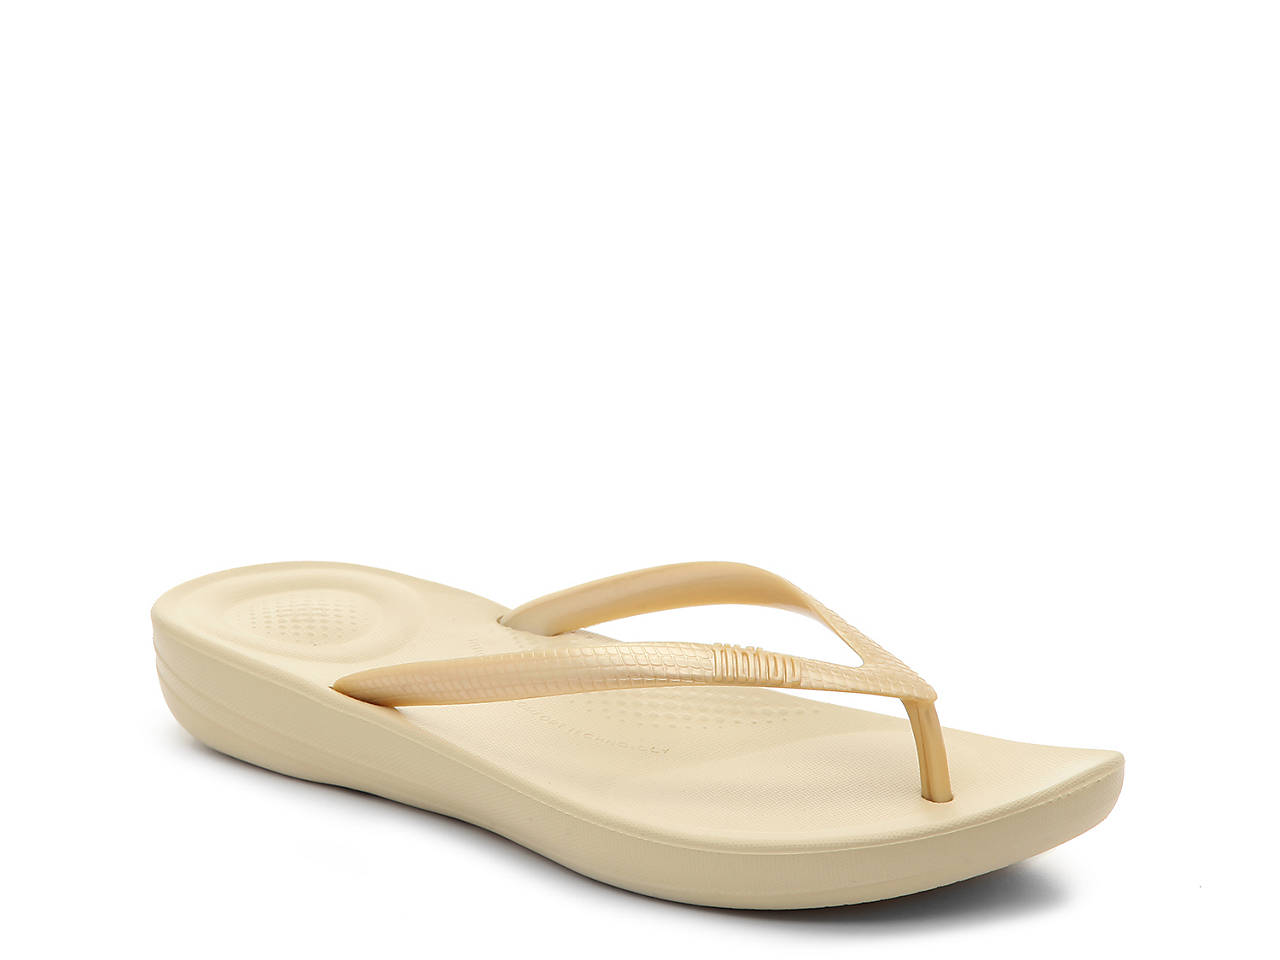 fc05d822350a2 ... Womens Fitflop Iqushion Ergonomic Nude Rose Gold Flip Flops UK Size  pretty nice ca82d 2906a  iQushion Flip Flop differently b8126 260d1 ...